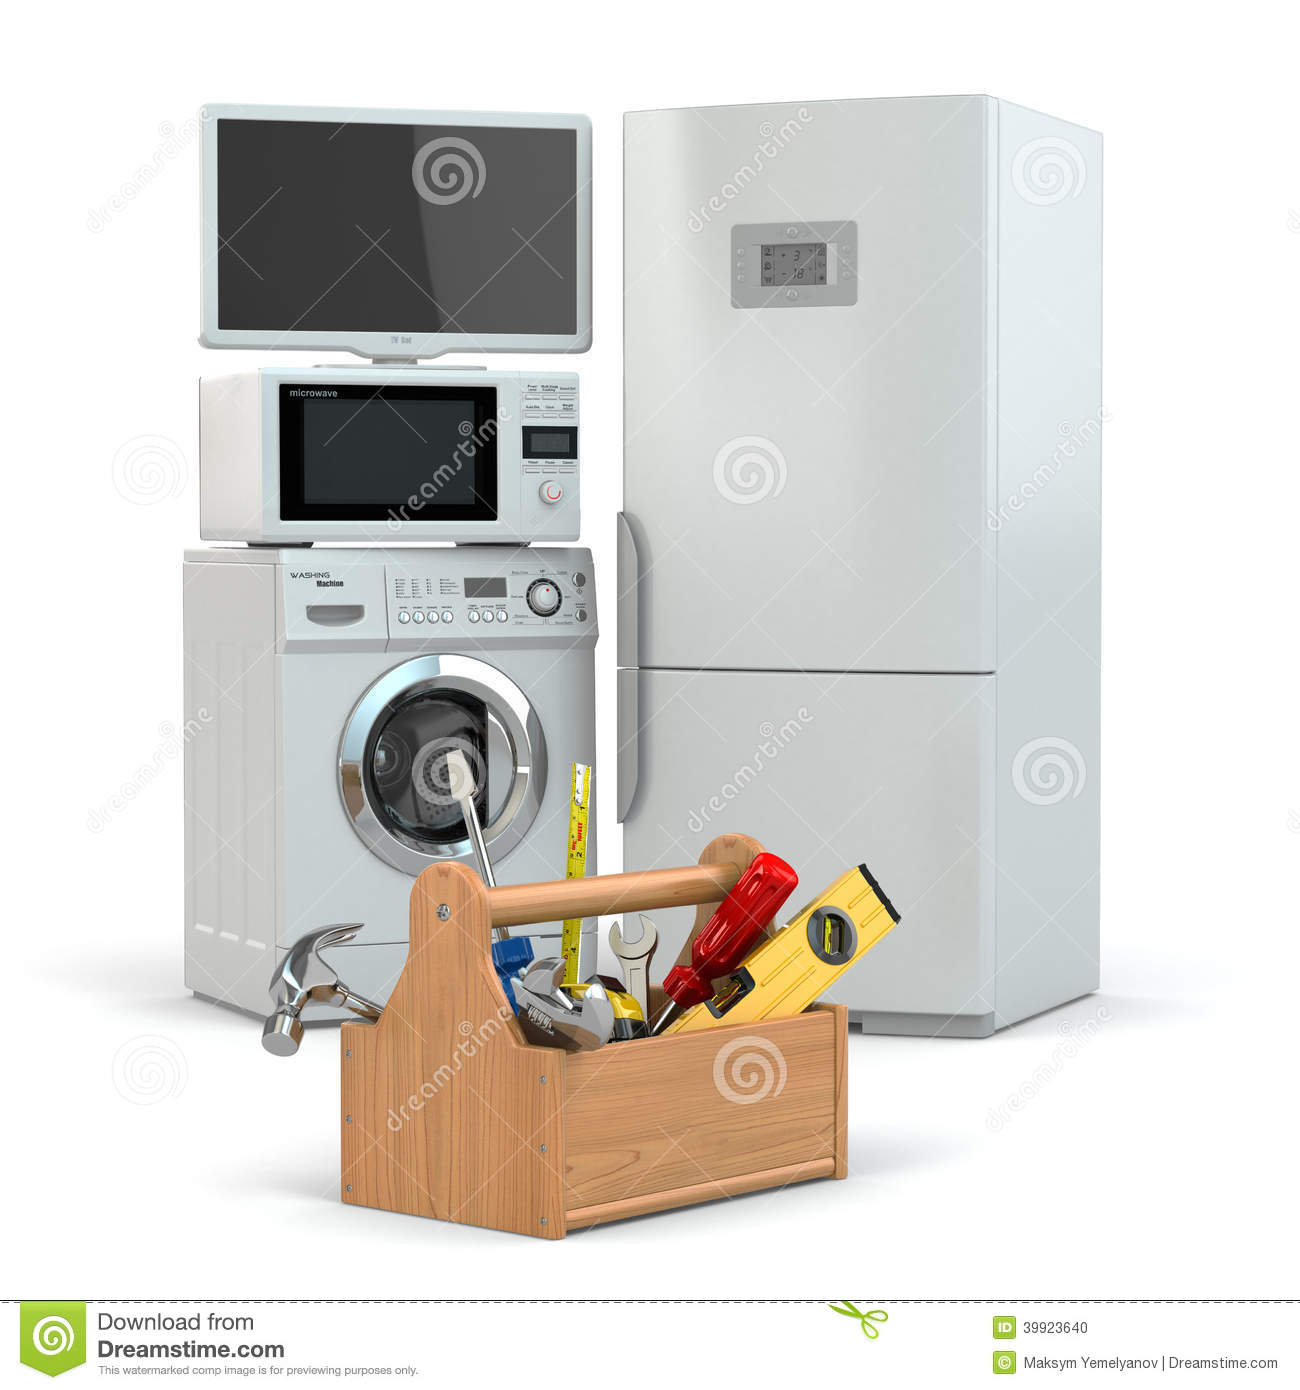 Appliance Repair Toolbox And Tv Refrigerator Washing